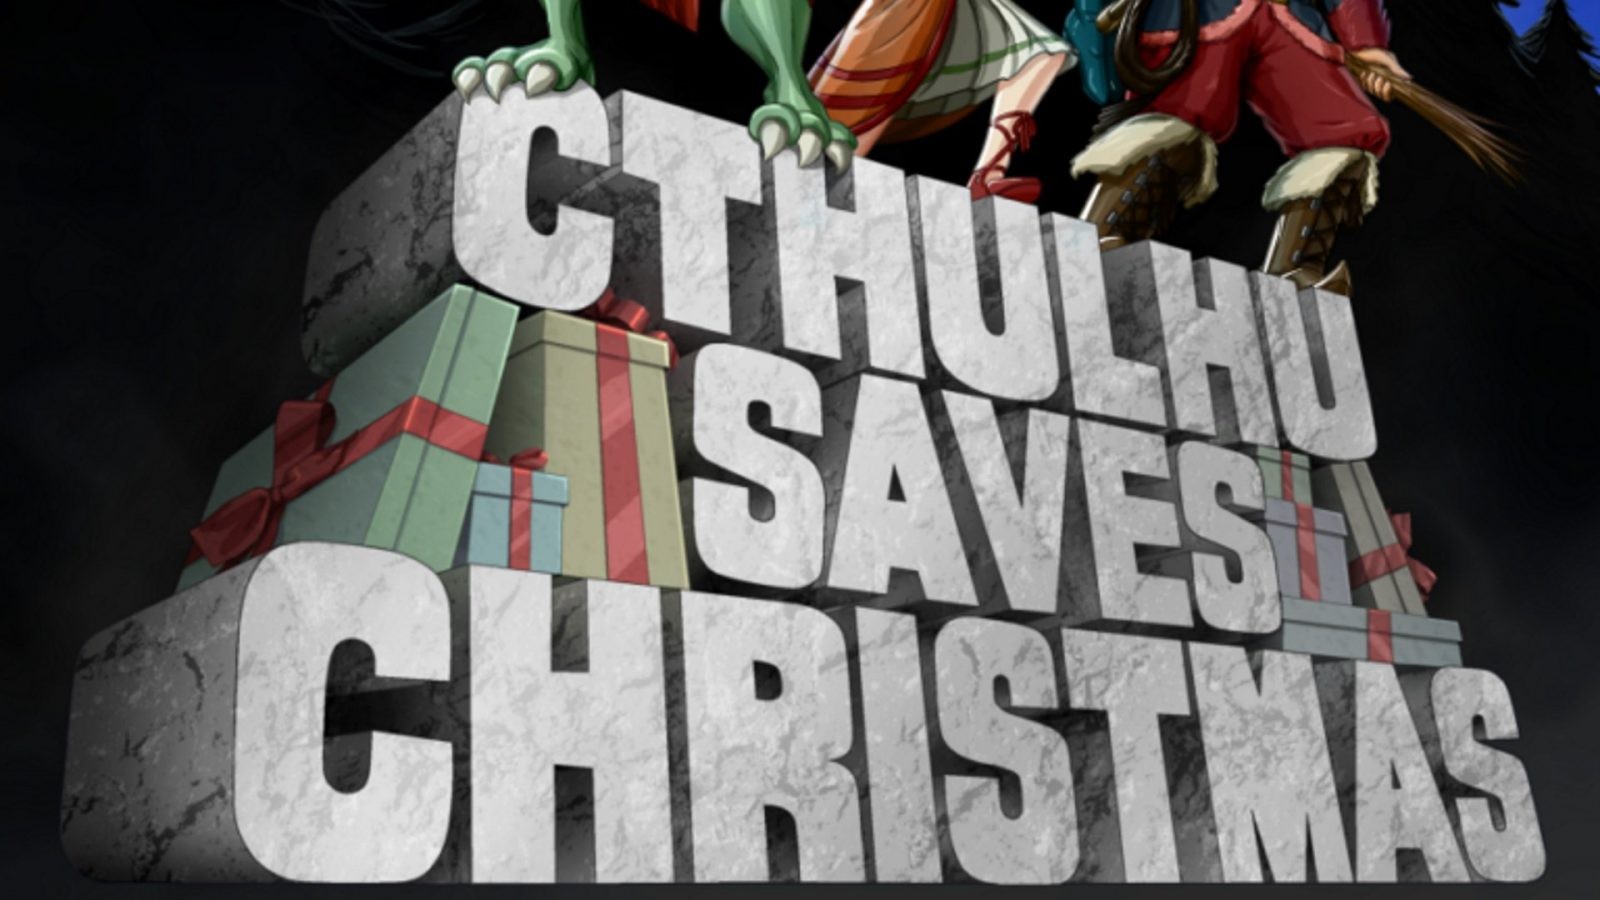 Zeboyd Games Announces Cthulhu Saves Christmas